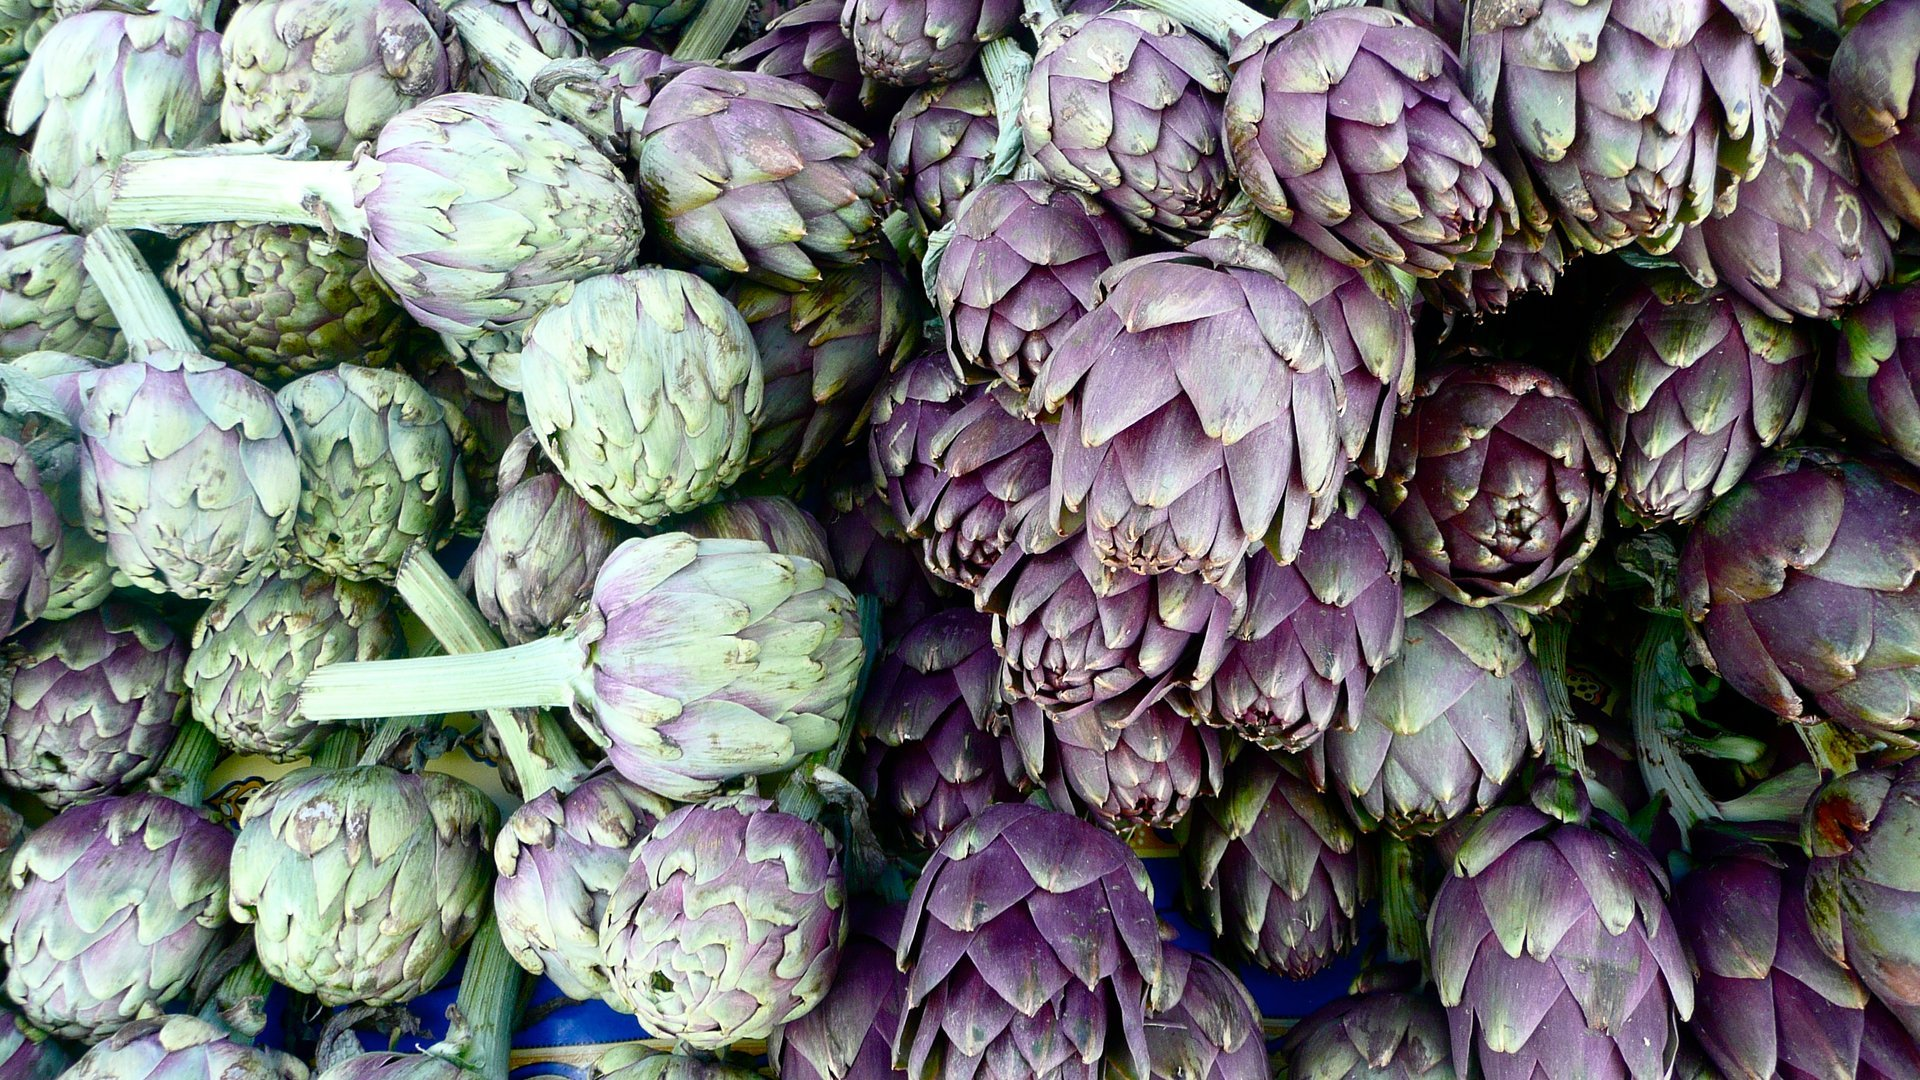 Artichokes in Amalfi Coast 2019 - Best Time